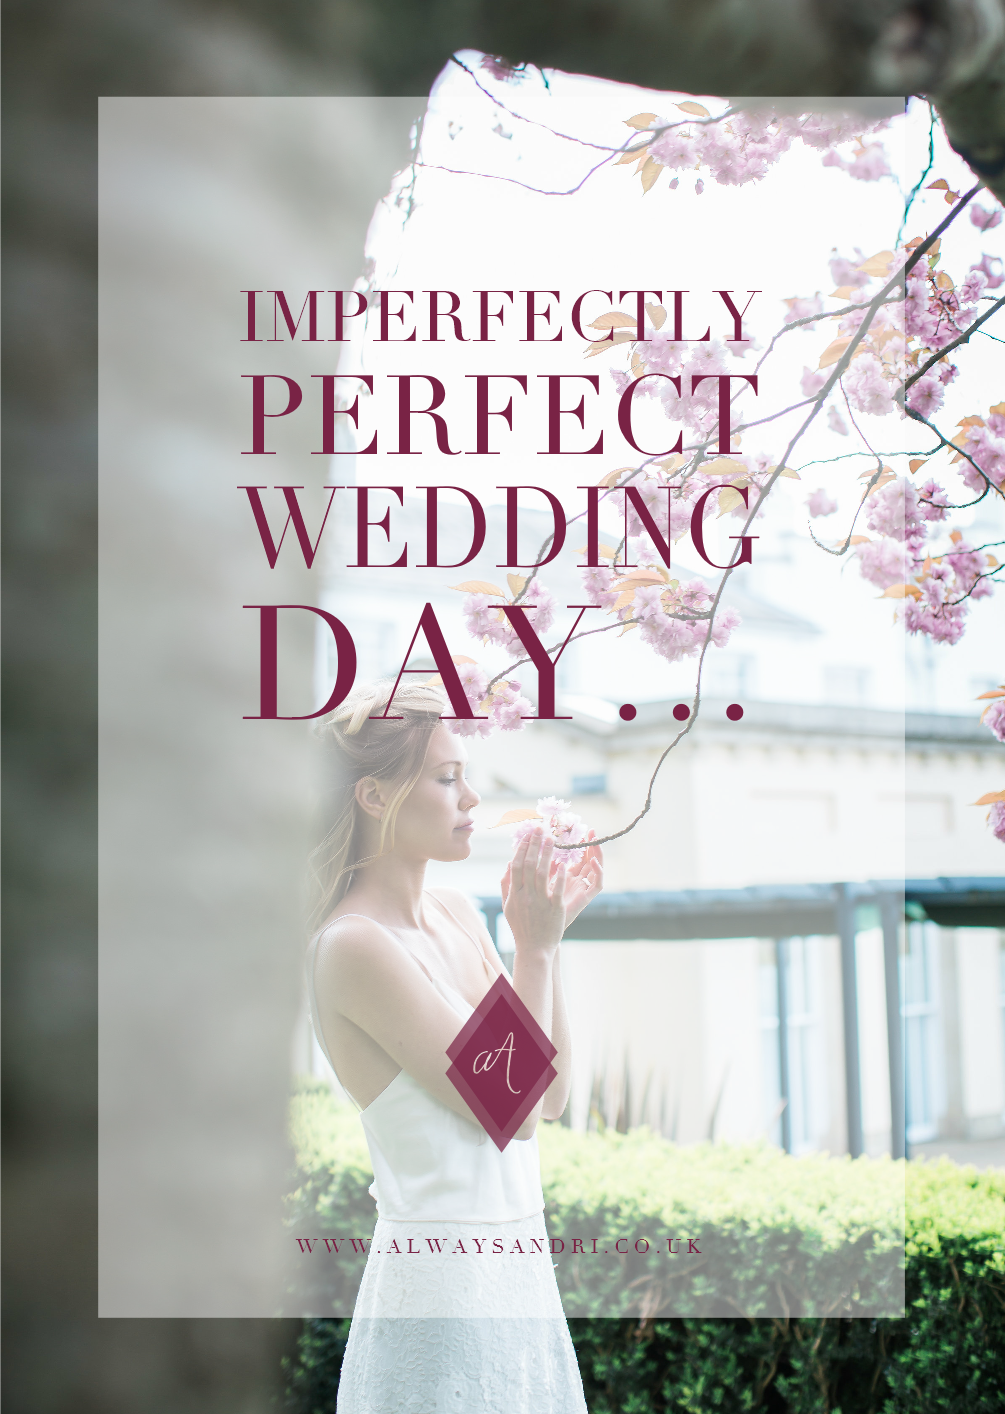 The Imperfectly Perfect Wedding Day Always Andri Wedding